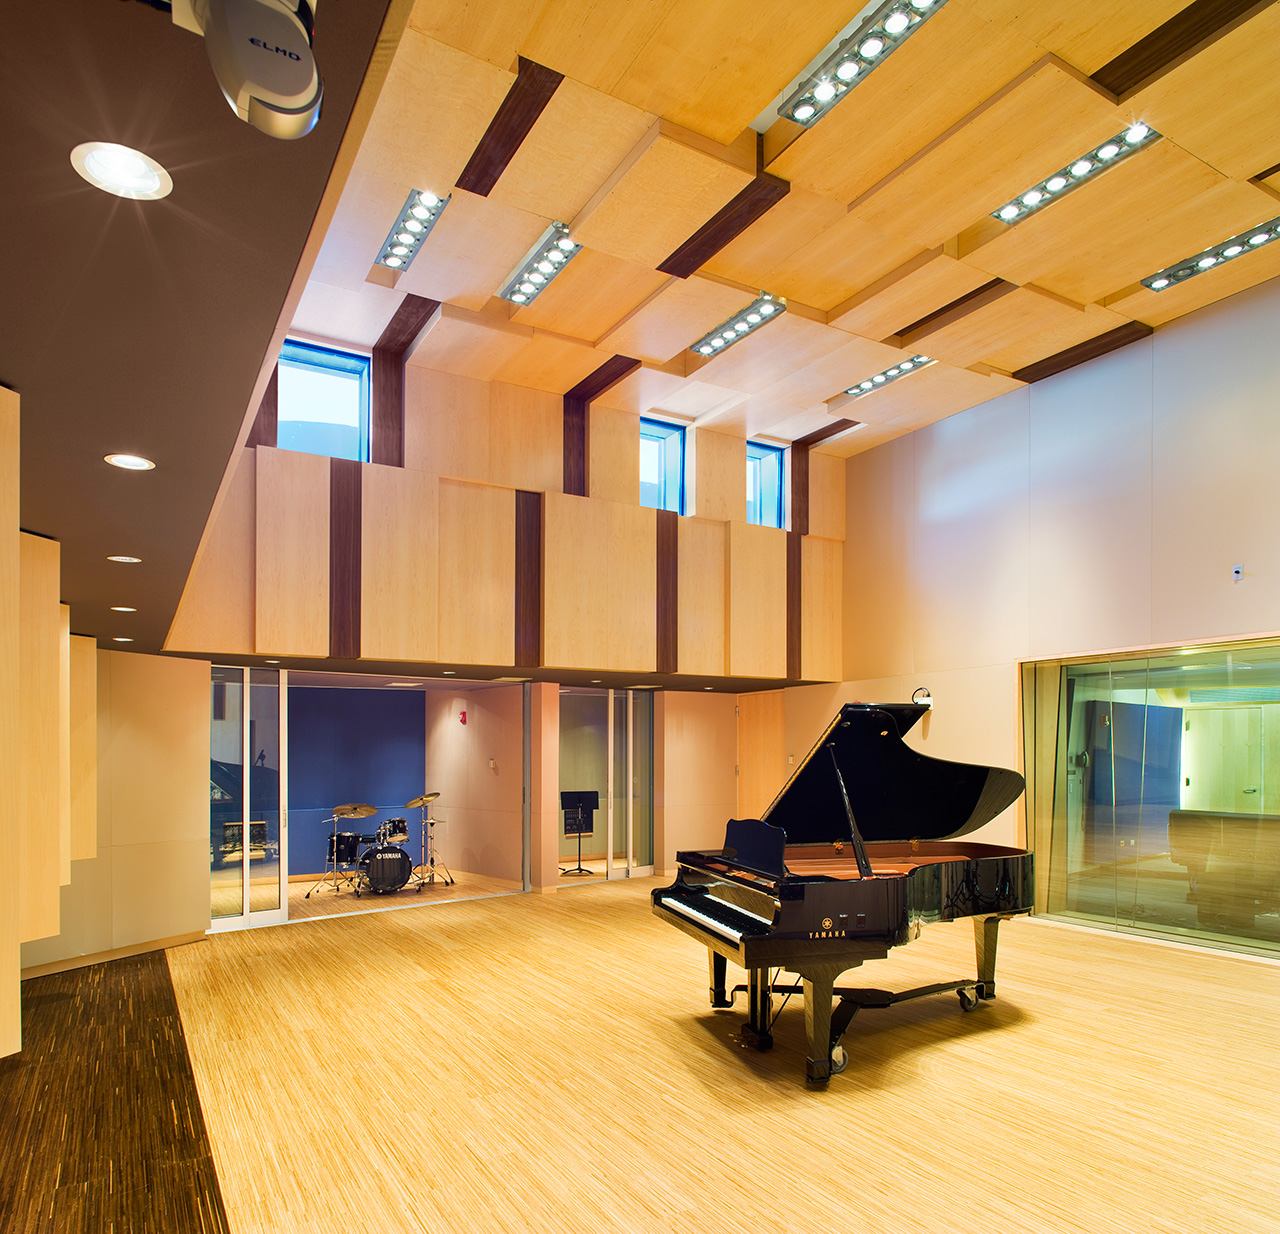 Wood panelled studio room with a grand piano in the center